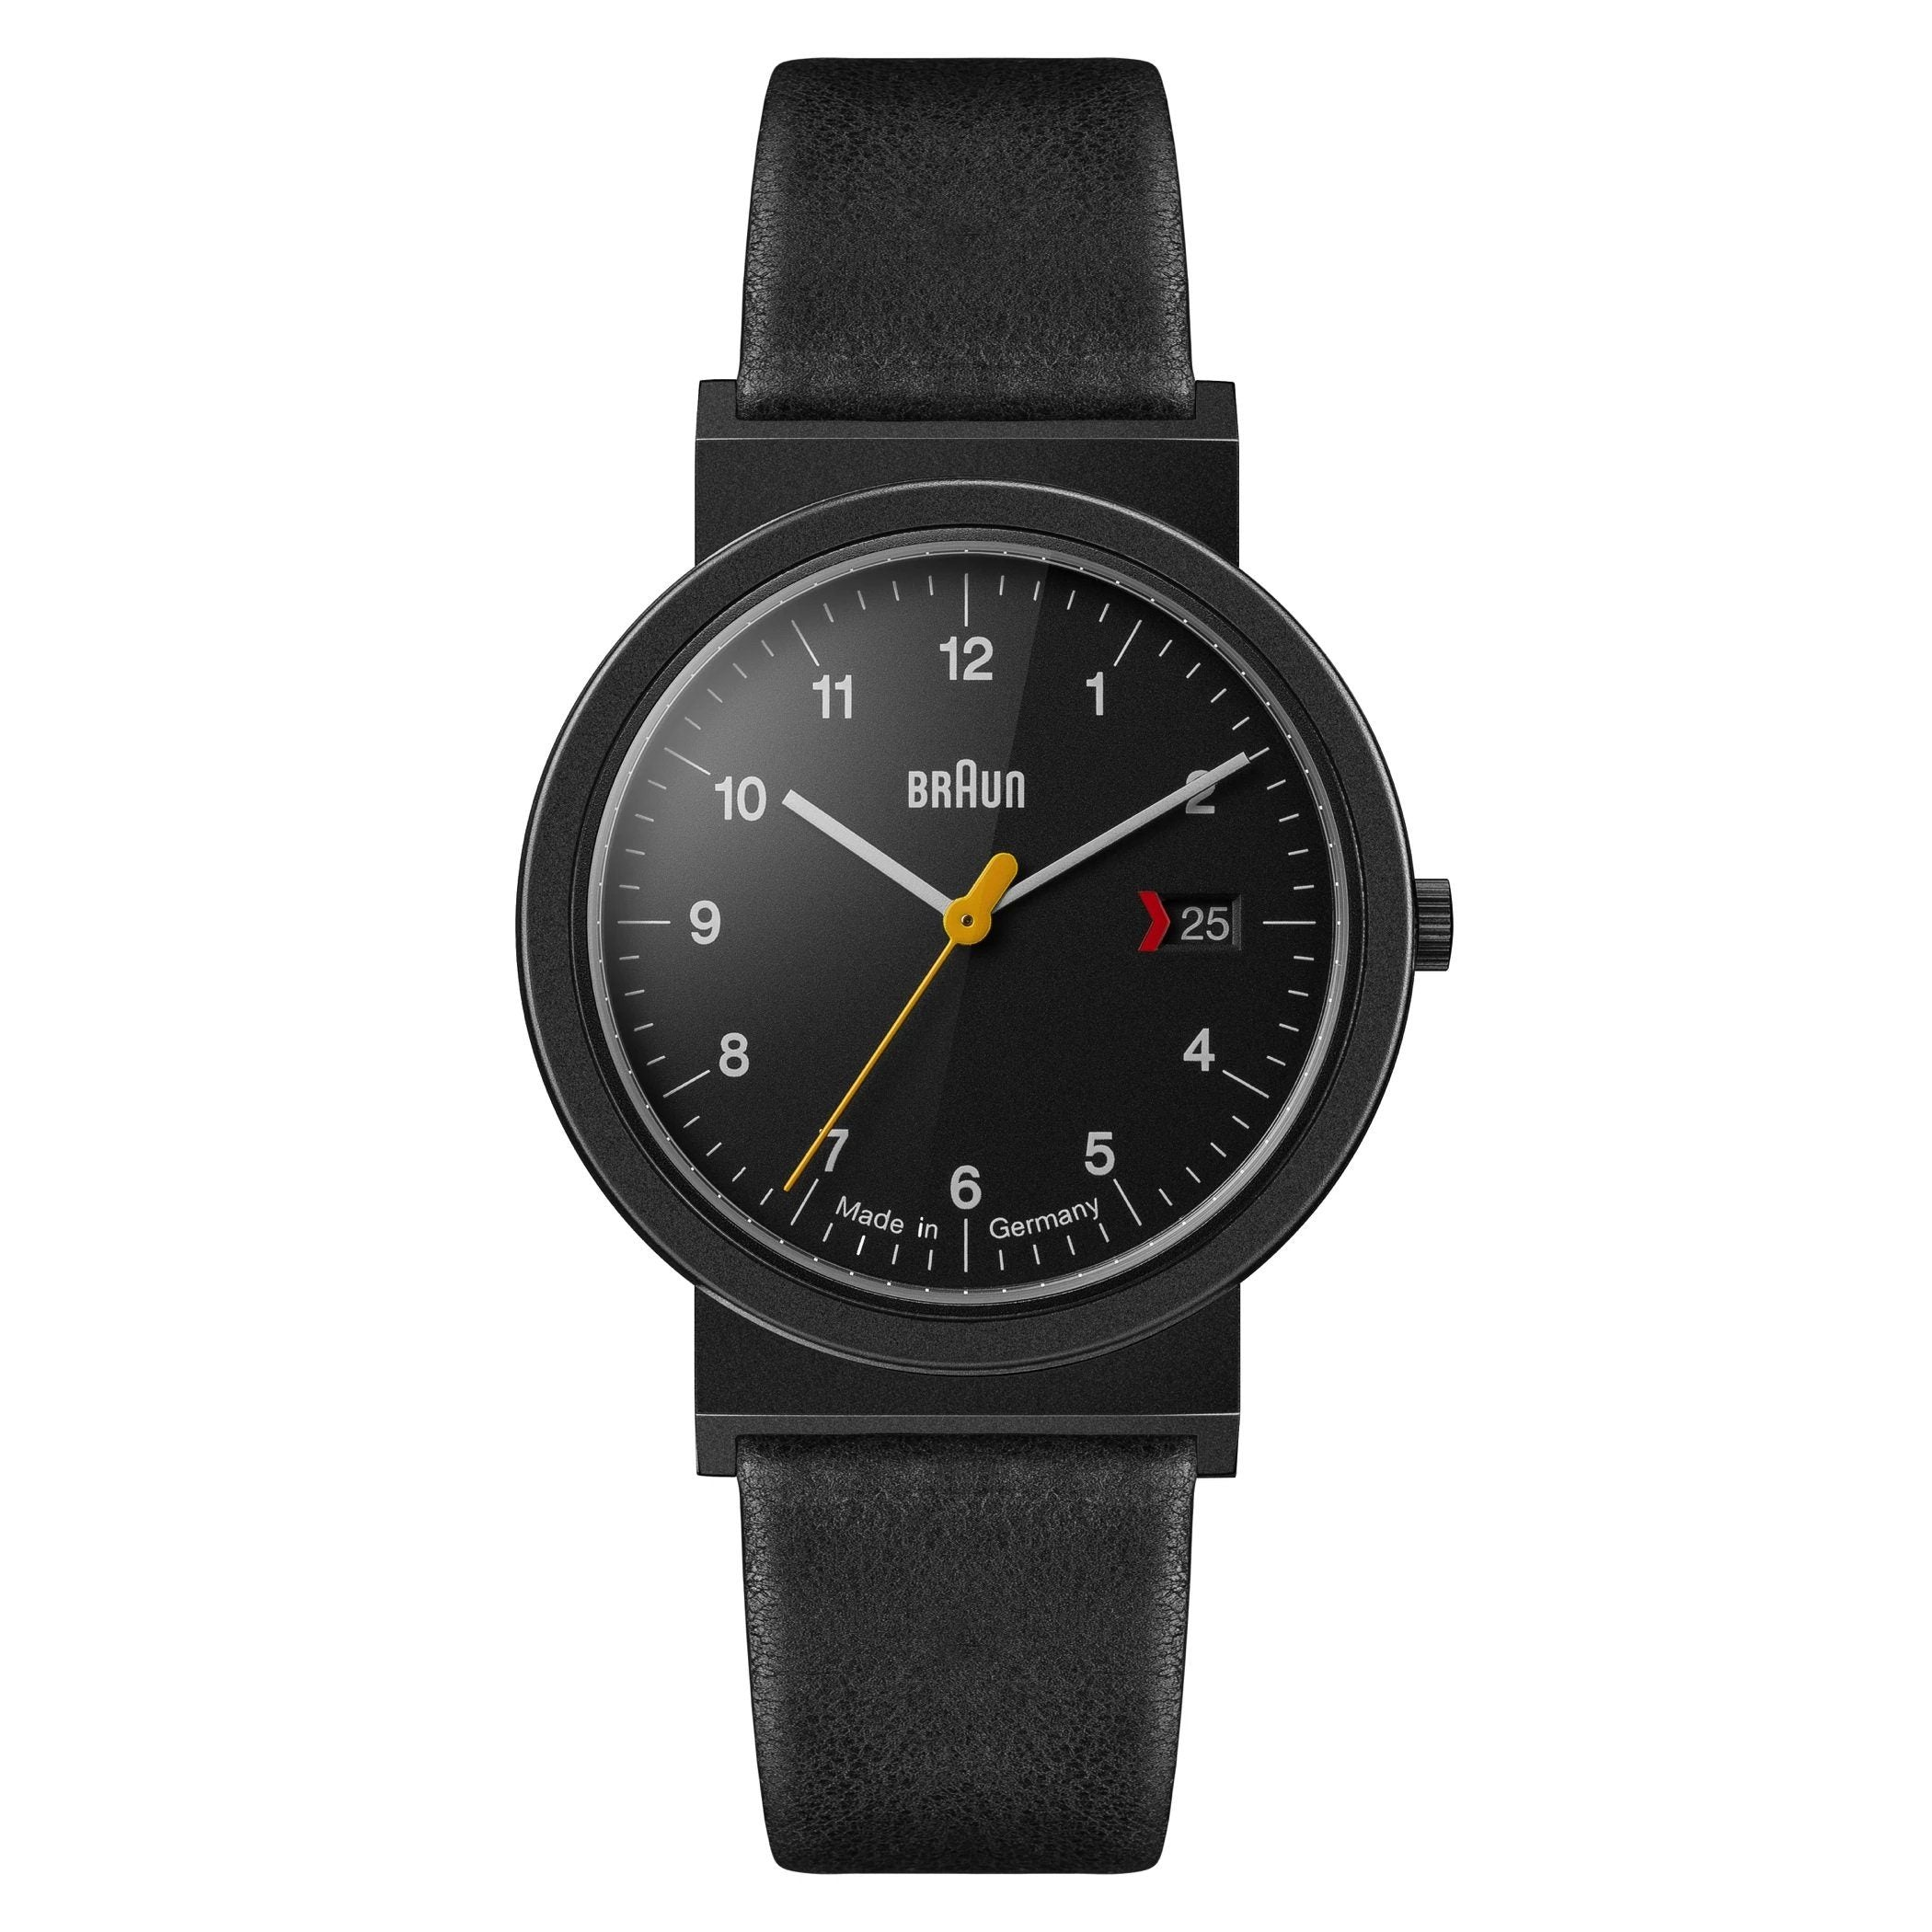 Braun Men's BN-AW10 EVOB - Black Case